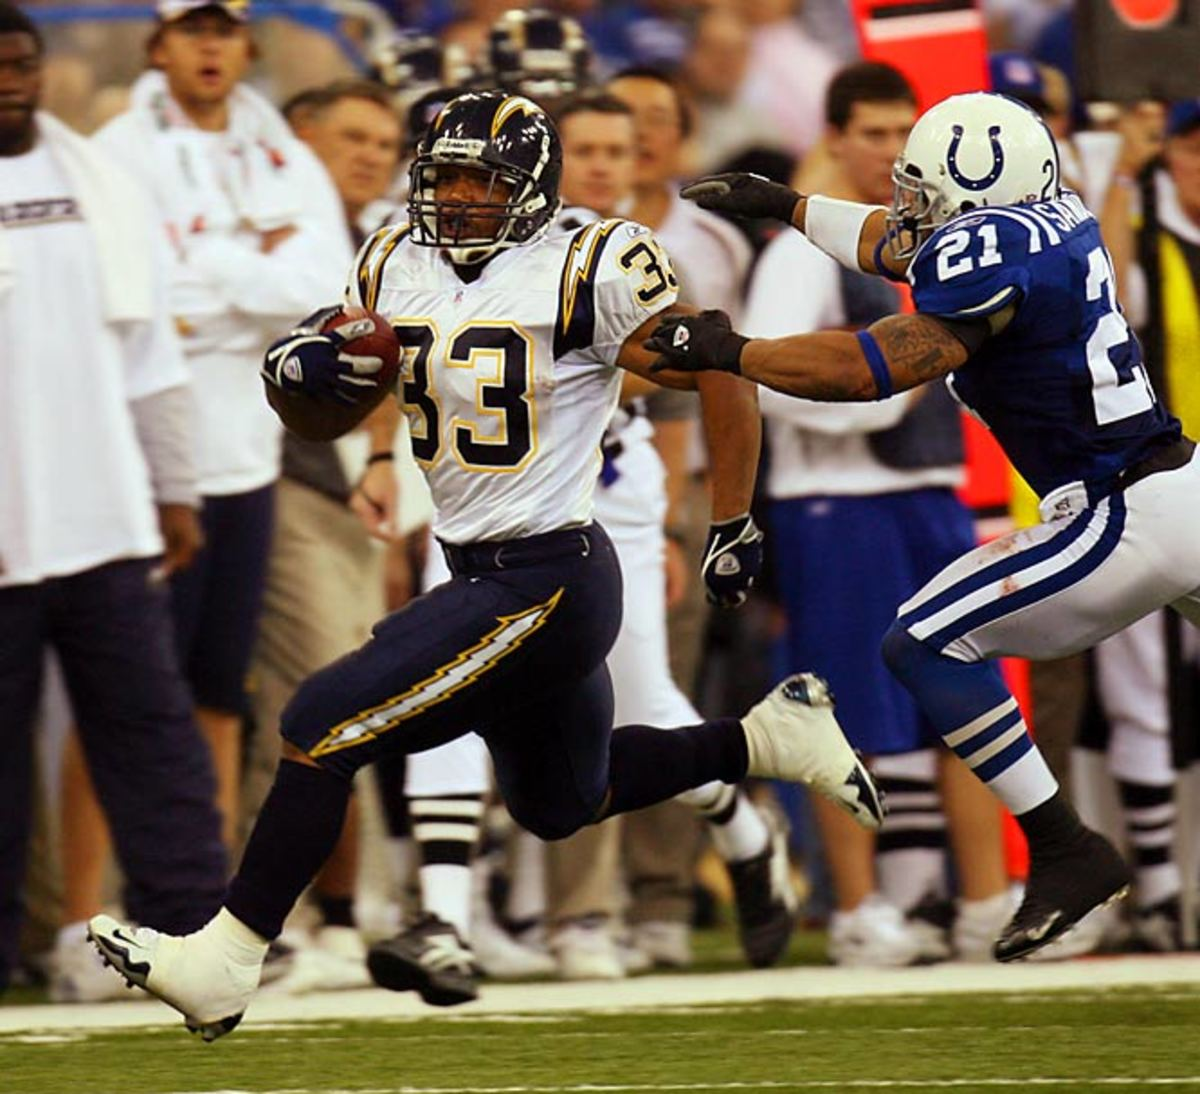 2005 Colts (13-0), lost 26-17 to Chargers